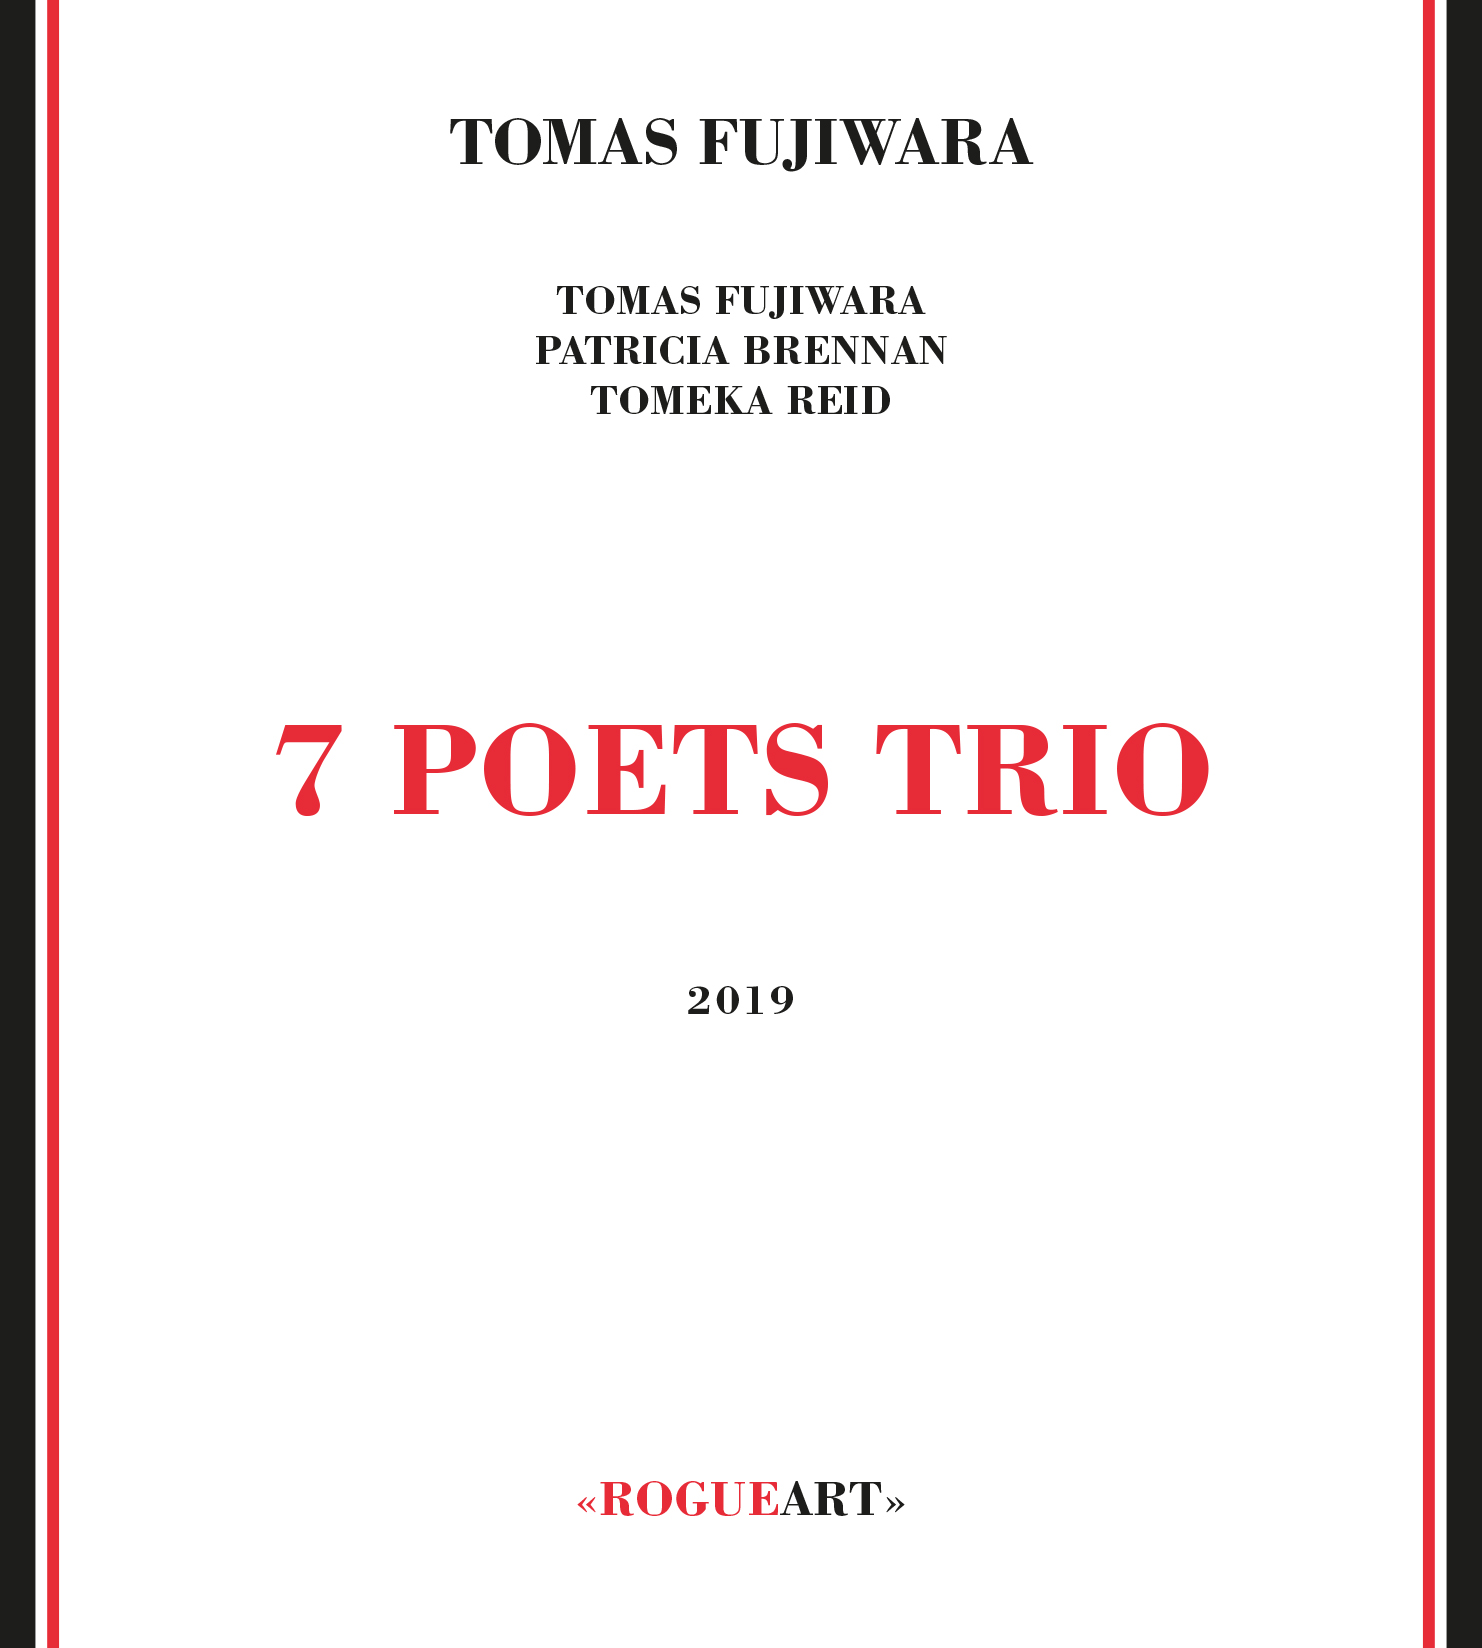 Front cover of the album 7 POETS TRIO